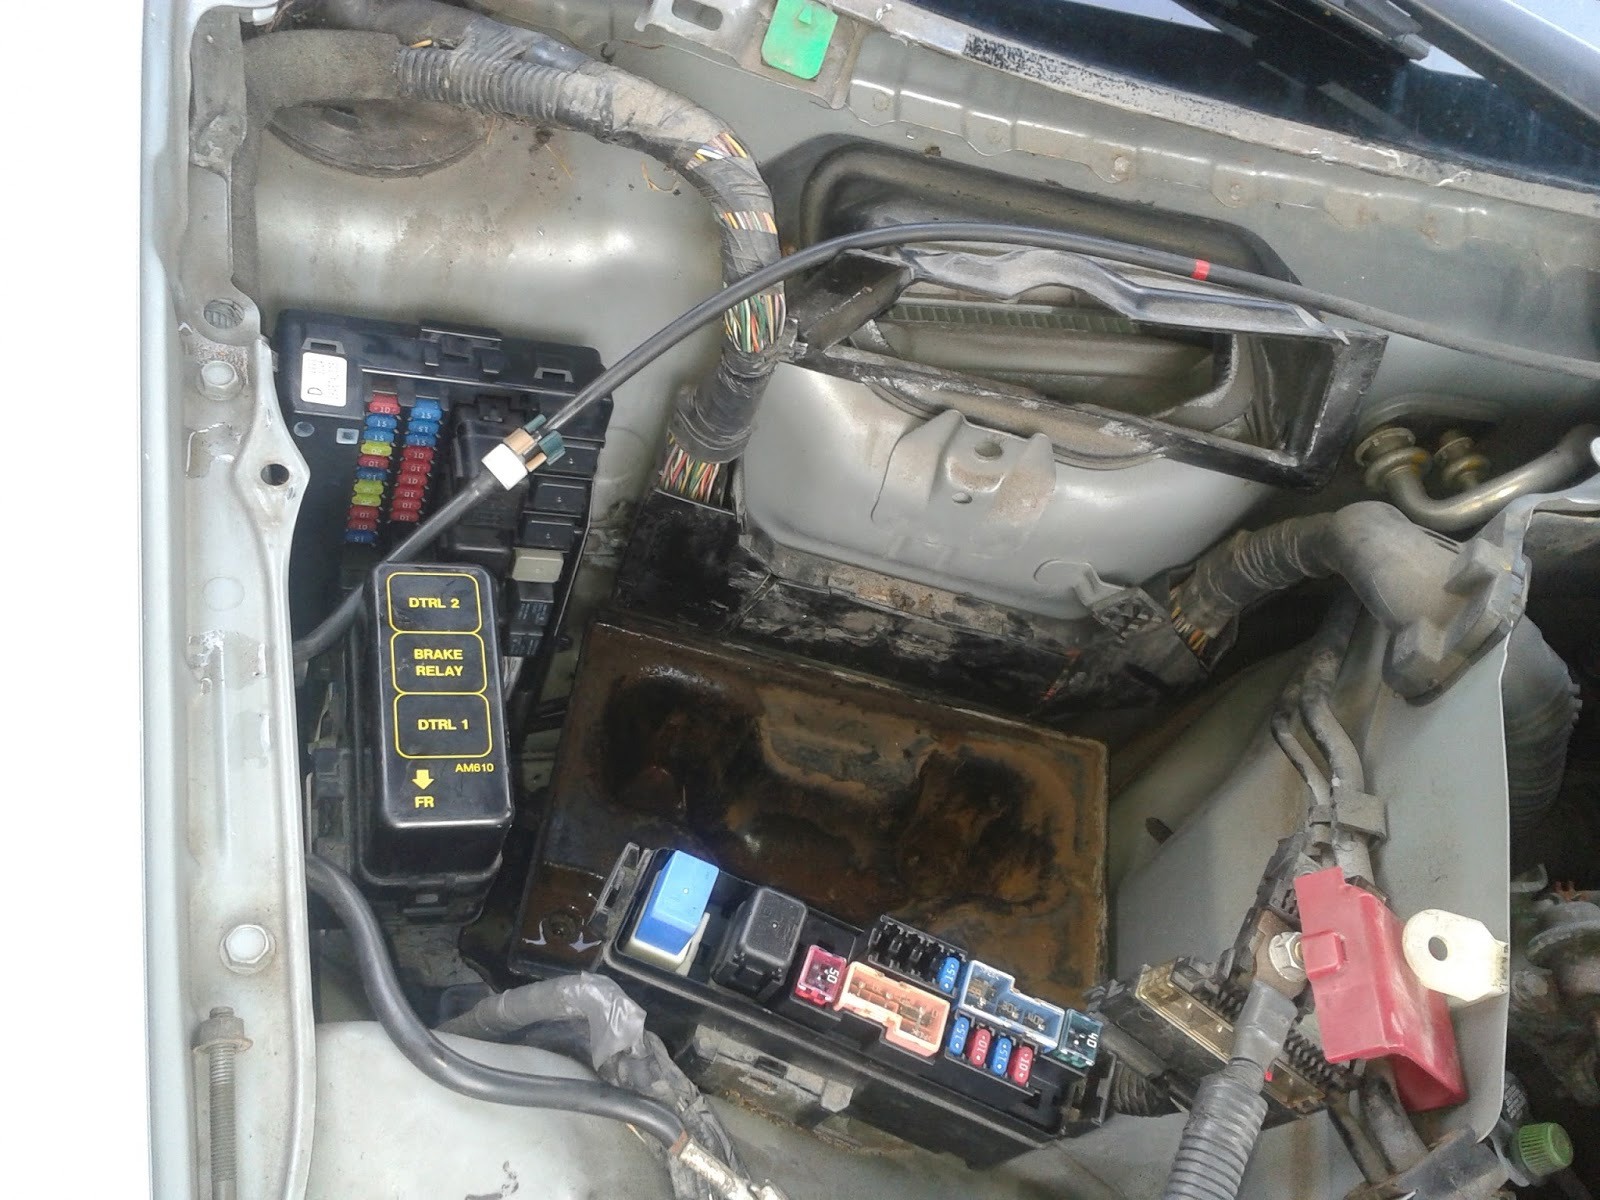 2015 05 27%2B18.55.50 zf inifiniti g35 2003 wet ipdm issue, how to fix it how to dry a wet home fuse box at edmiracle.co